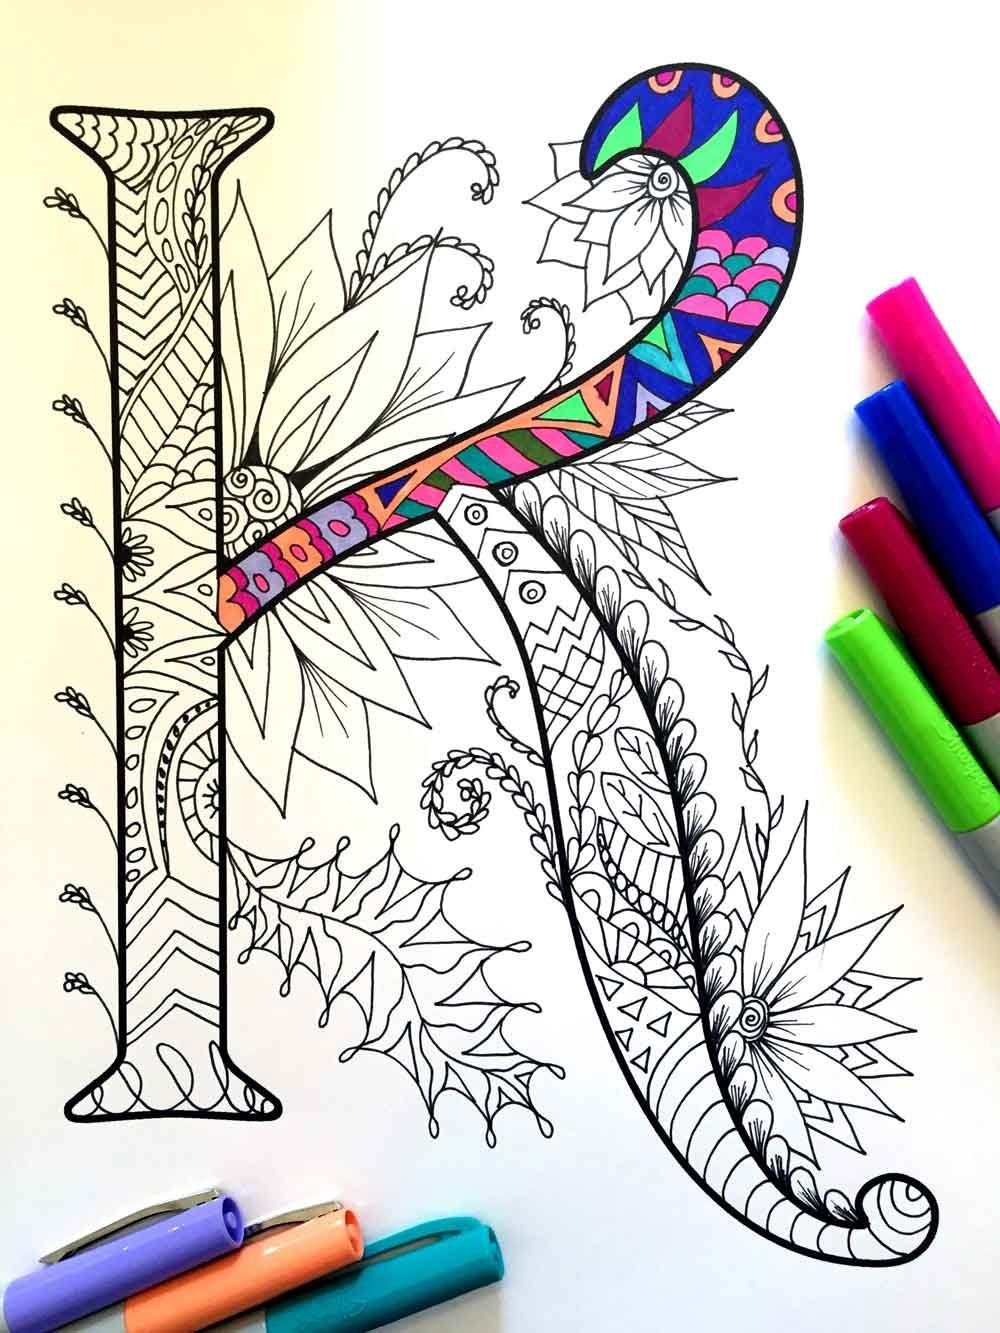 Harrington Font Printable Zentangle Alphabet Number Coloring Pages Zentangle Patterns Coloring Pages Coloring Books